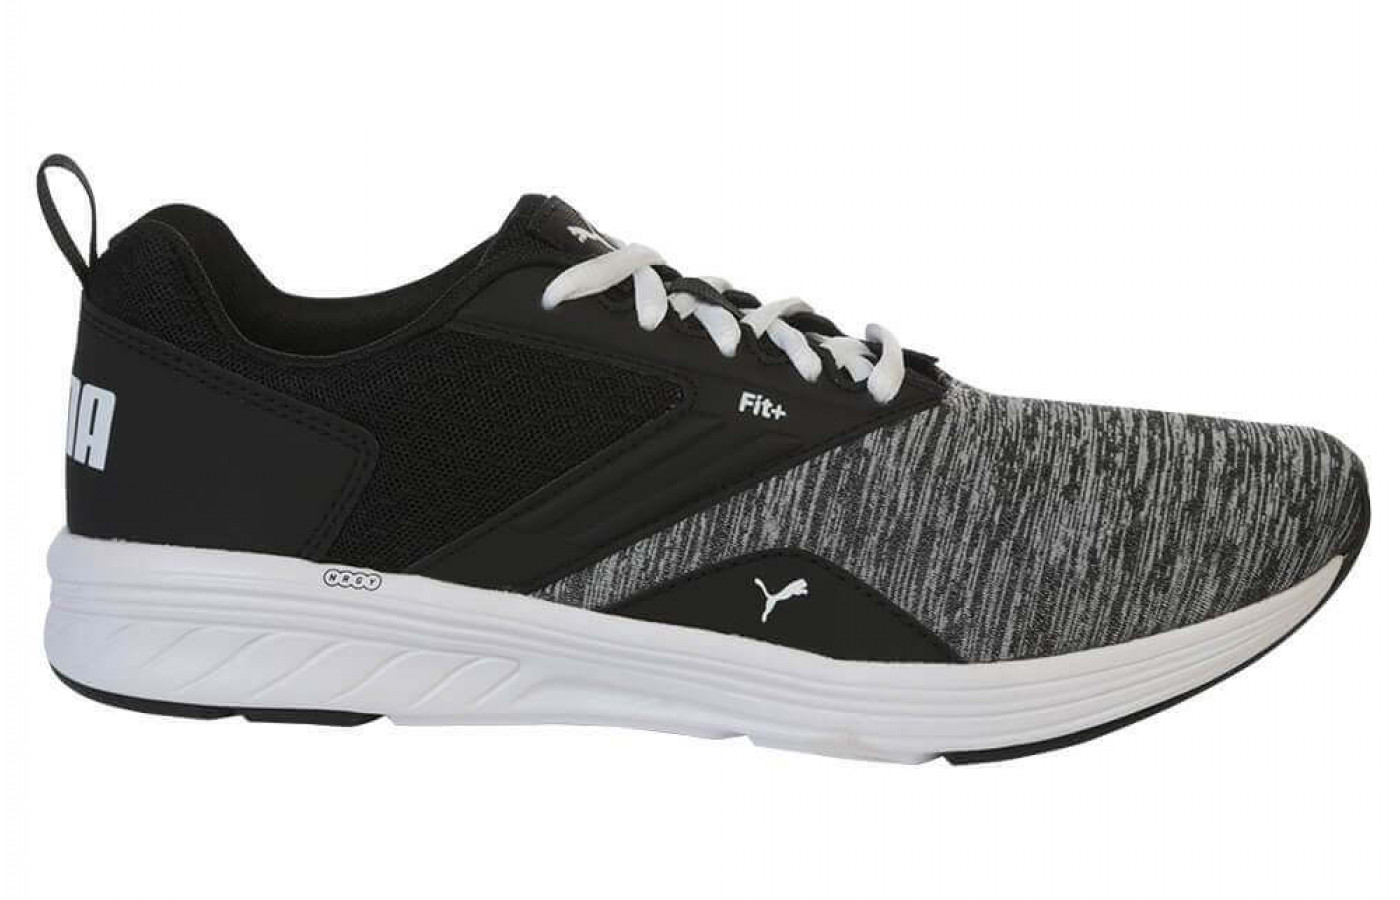 ae8e52276e04 Puma NRGY Comet Reviewed - To Buy or Not in Mar 2019